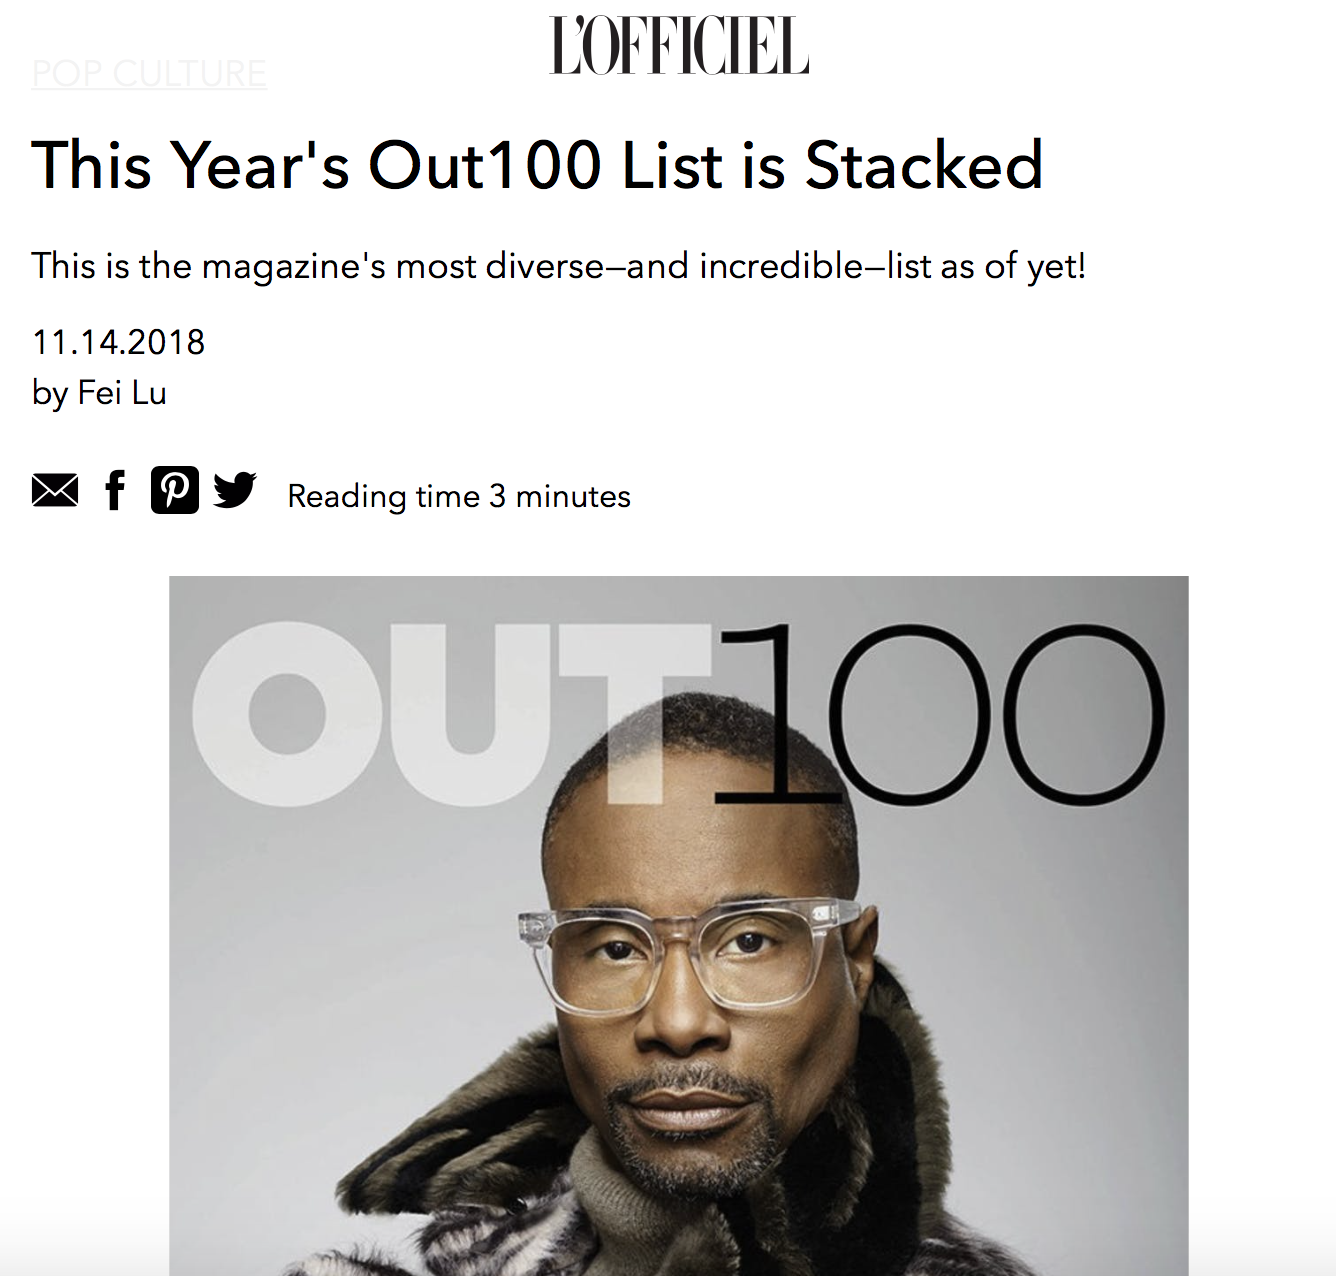 """L'OFFICIEL    """"Considering that this year has been a polarizing year for all minority groups within the States, a celebration like this is sorely needed. Called the most diverse list yet, it's amazing to see the LGBTQIA community embracing gender and racial diversity as well."""""""